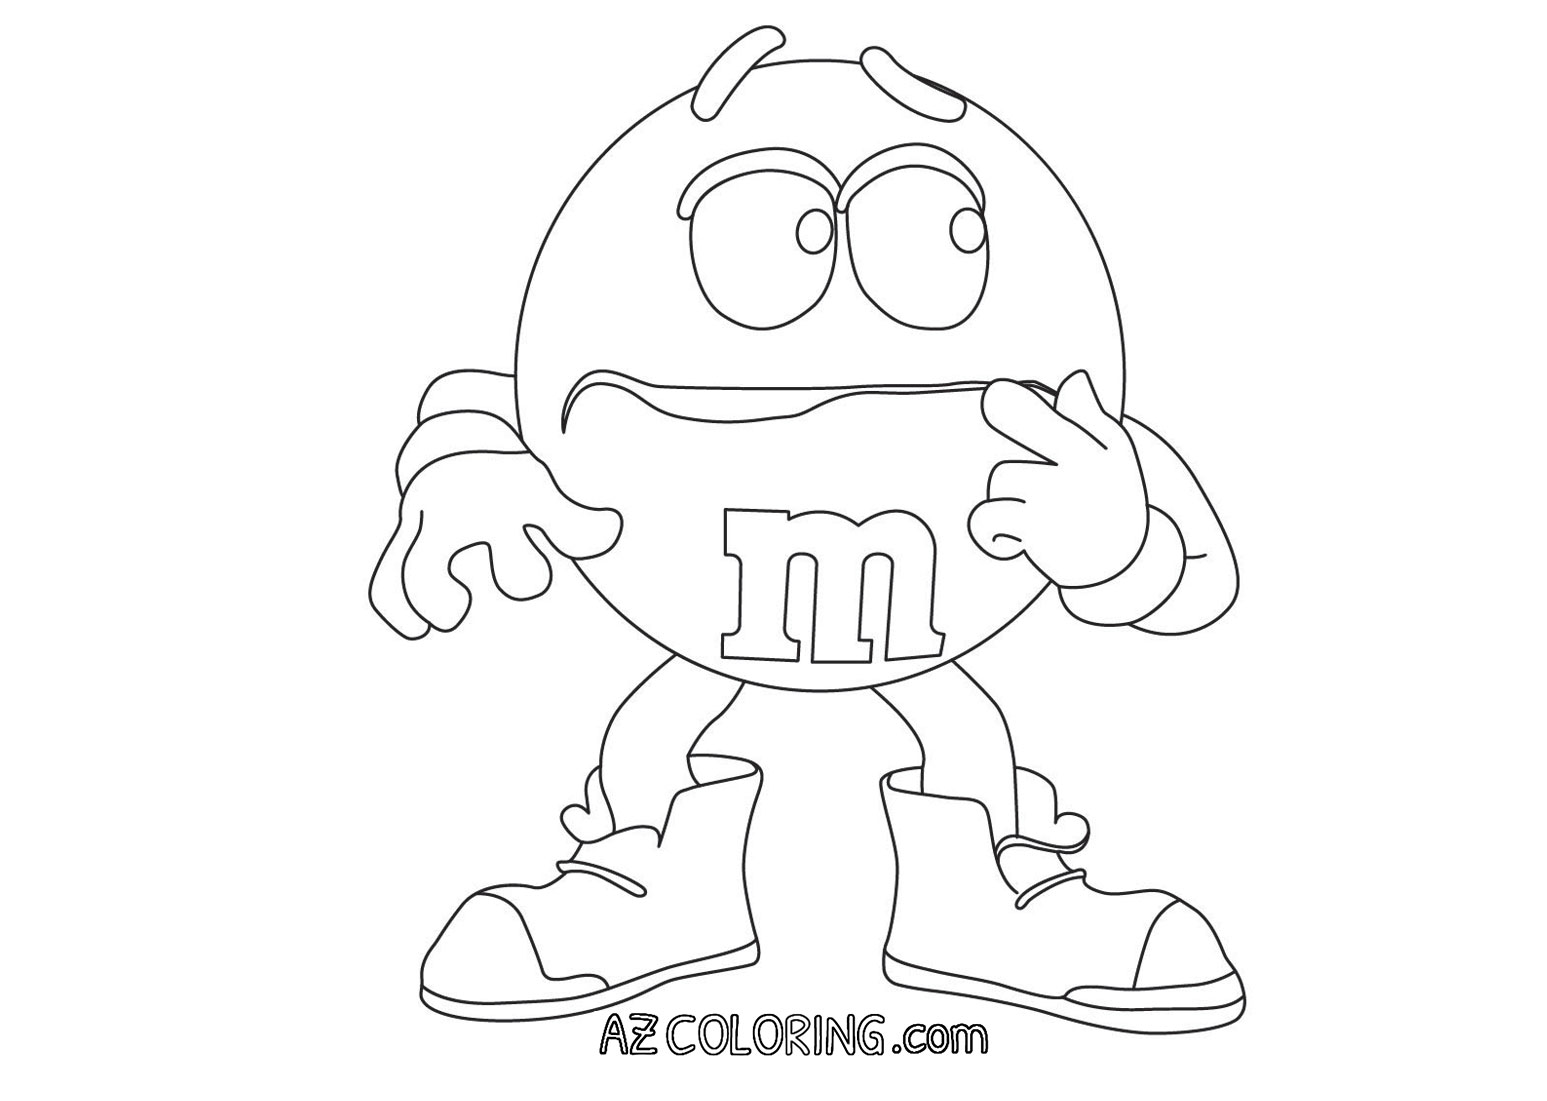 m ms coloring pages - photo#13